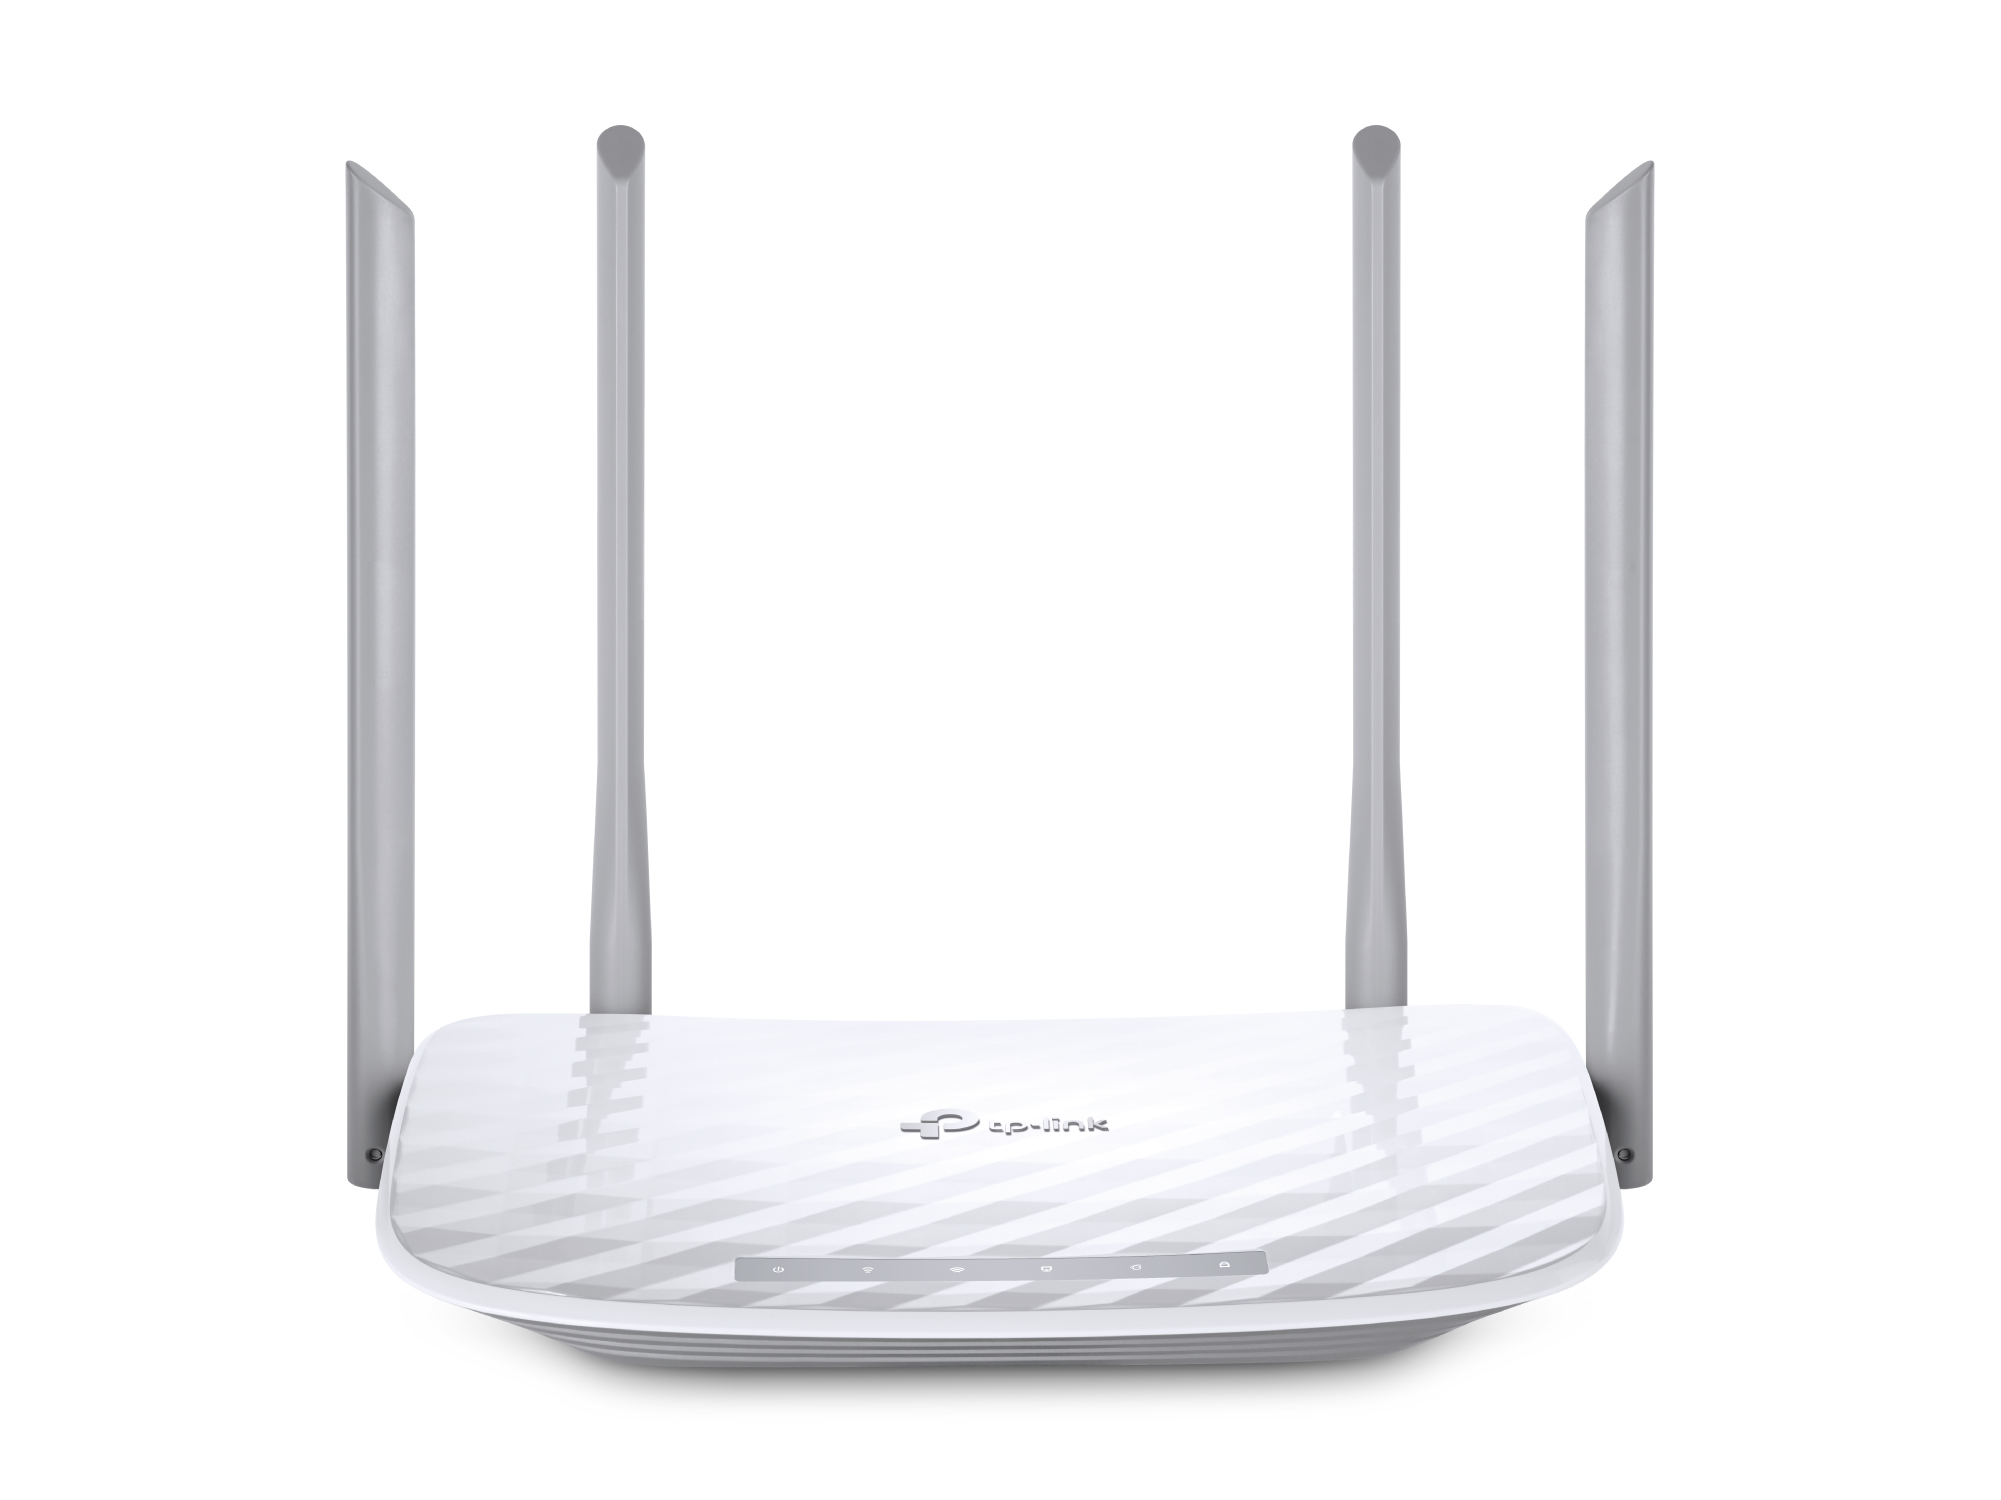 TP-Link Archer C50 V3 AC1200 WiFi DualBand Router